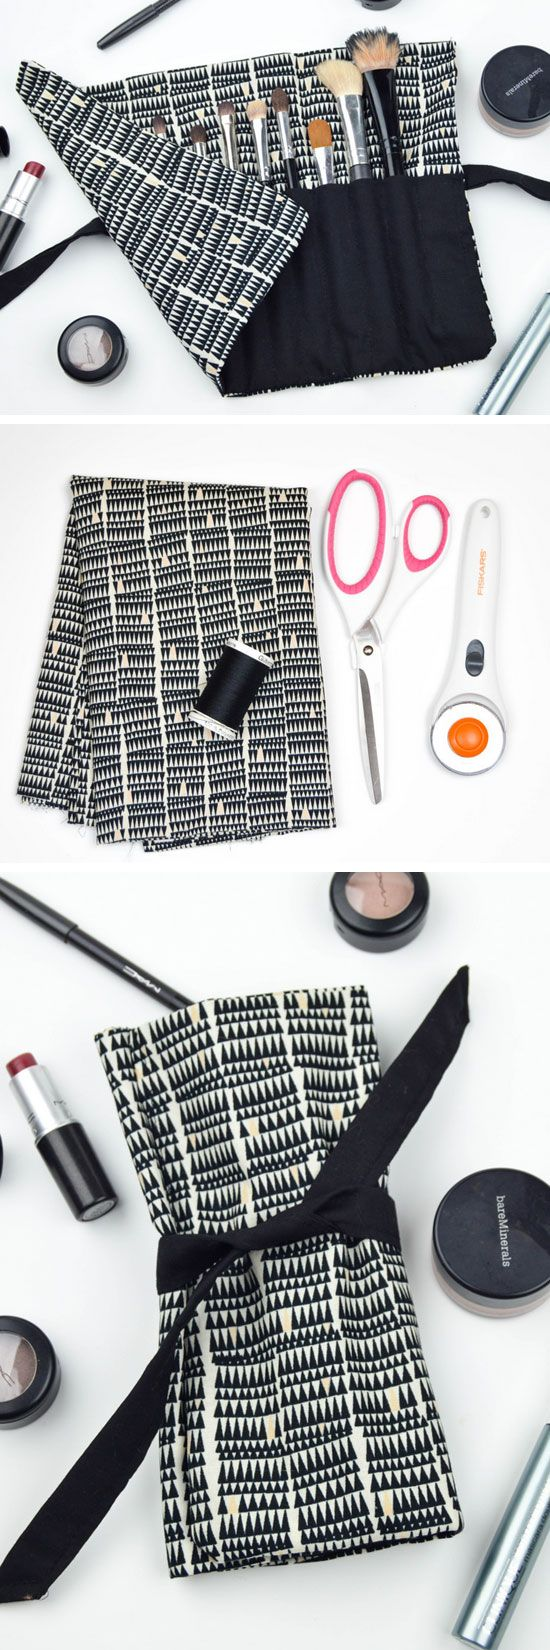 DIY Travel Makeup Brush Roll | 18 DIY Makeup Storage Ideas | DIY Travel Makeup Bag Organization